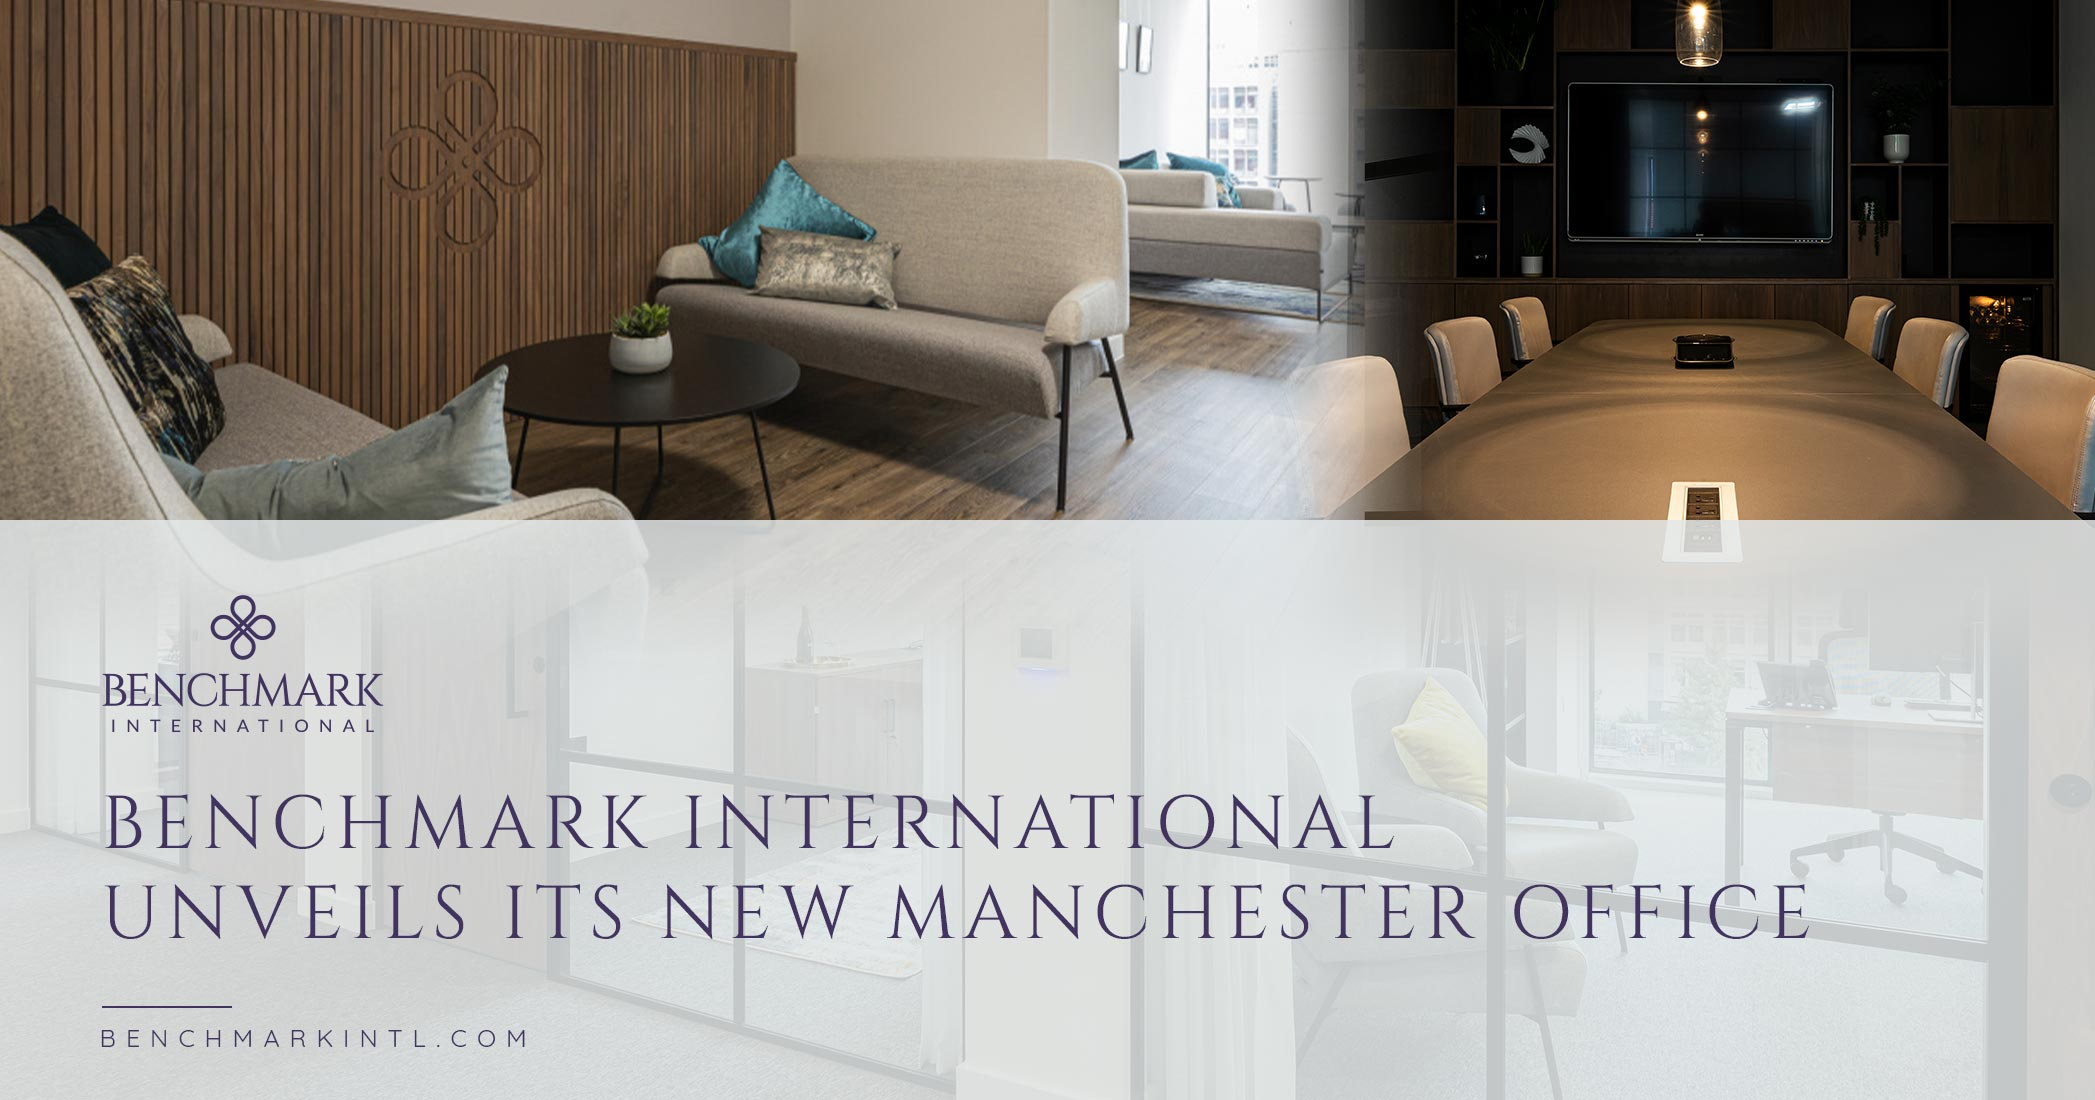 Benchmark International Unveils its New Manchester Office